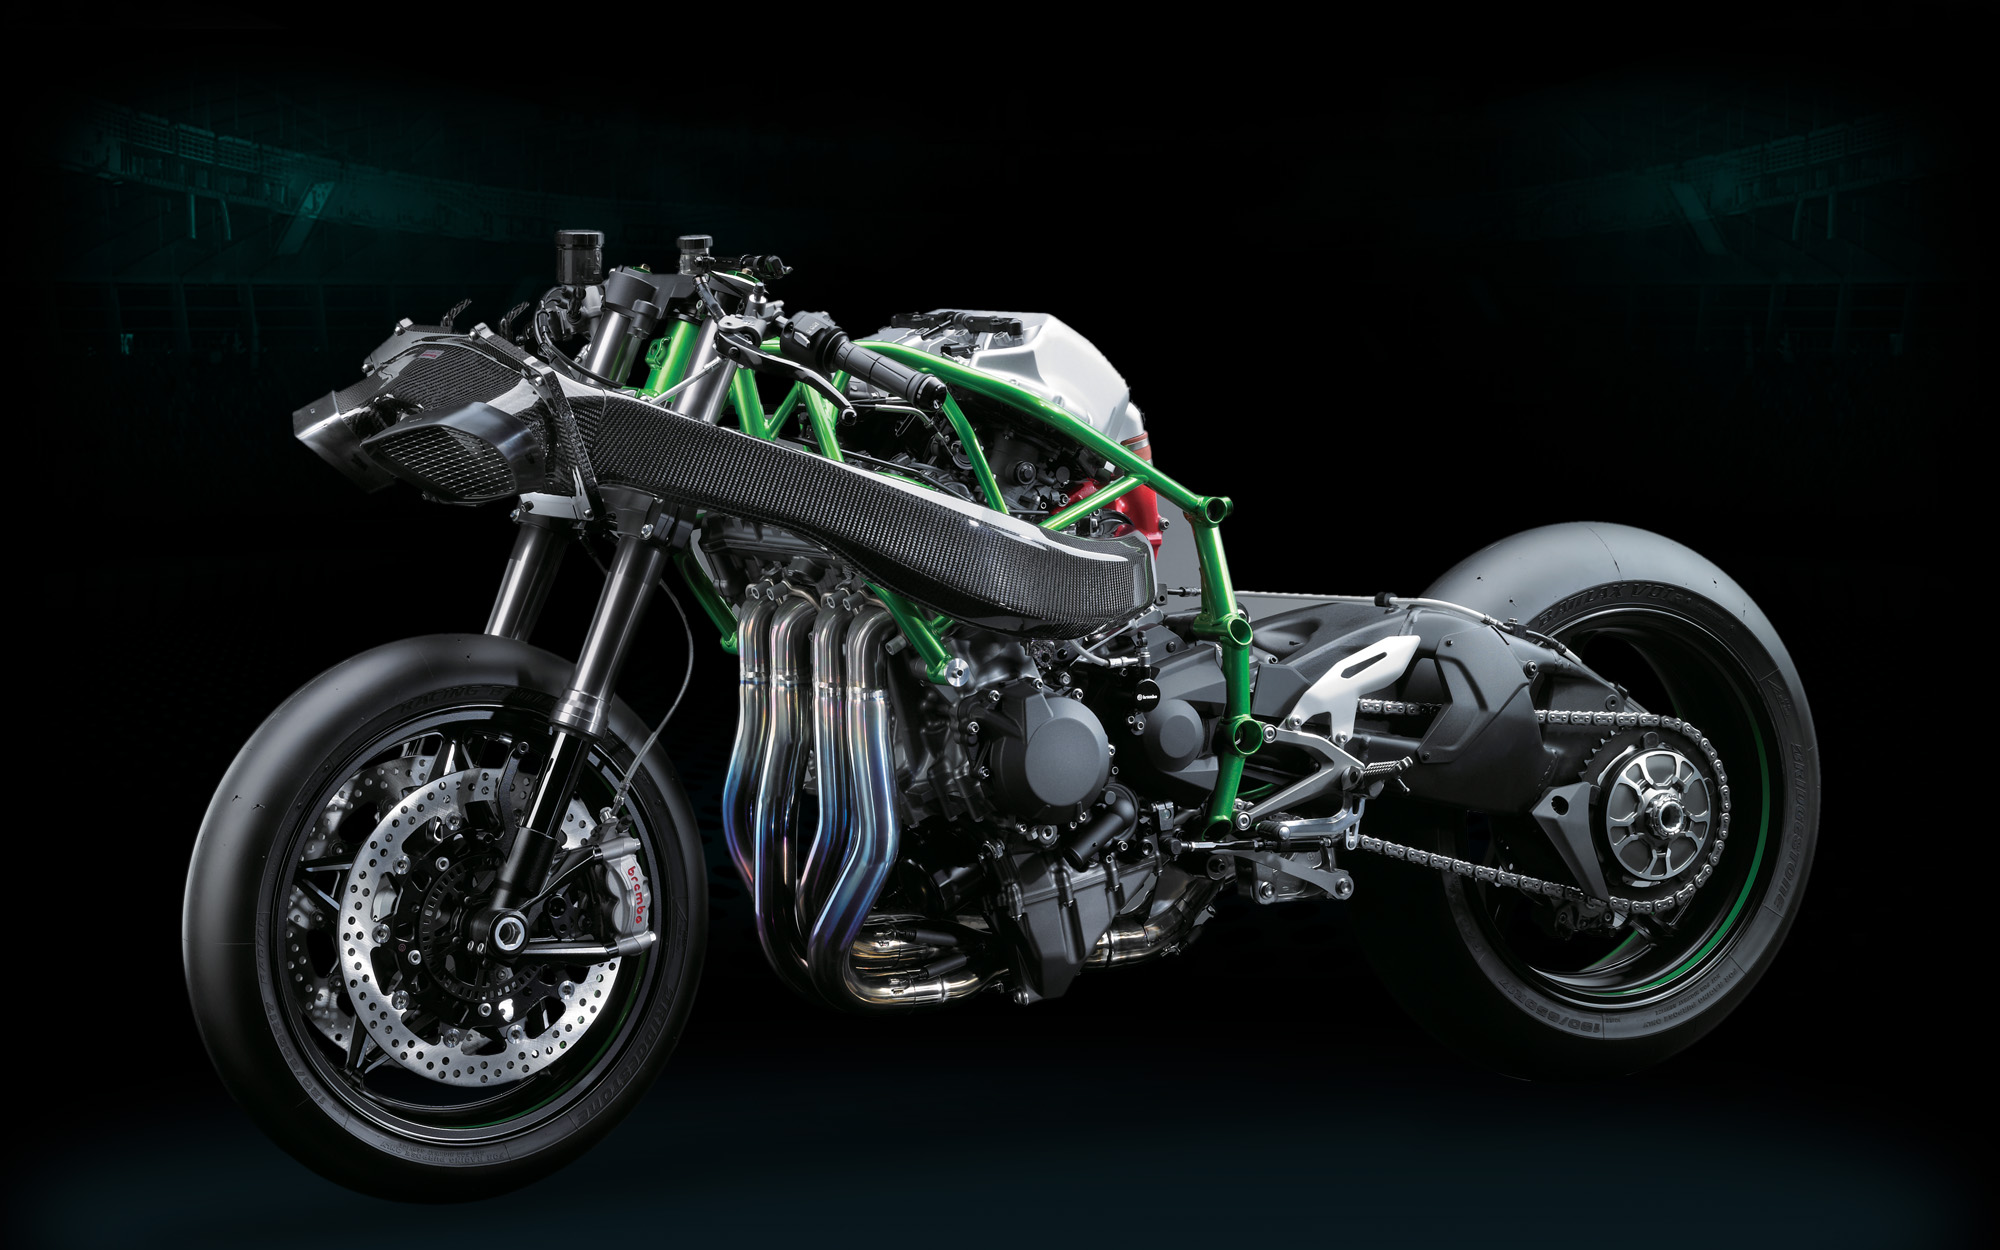 Kawasaki Ninja H2r Officially 300hp Of Hyperbike Asphalt Rubber